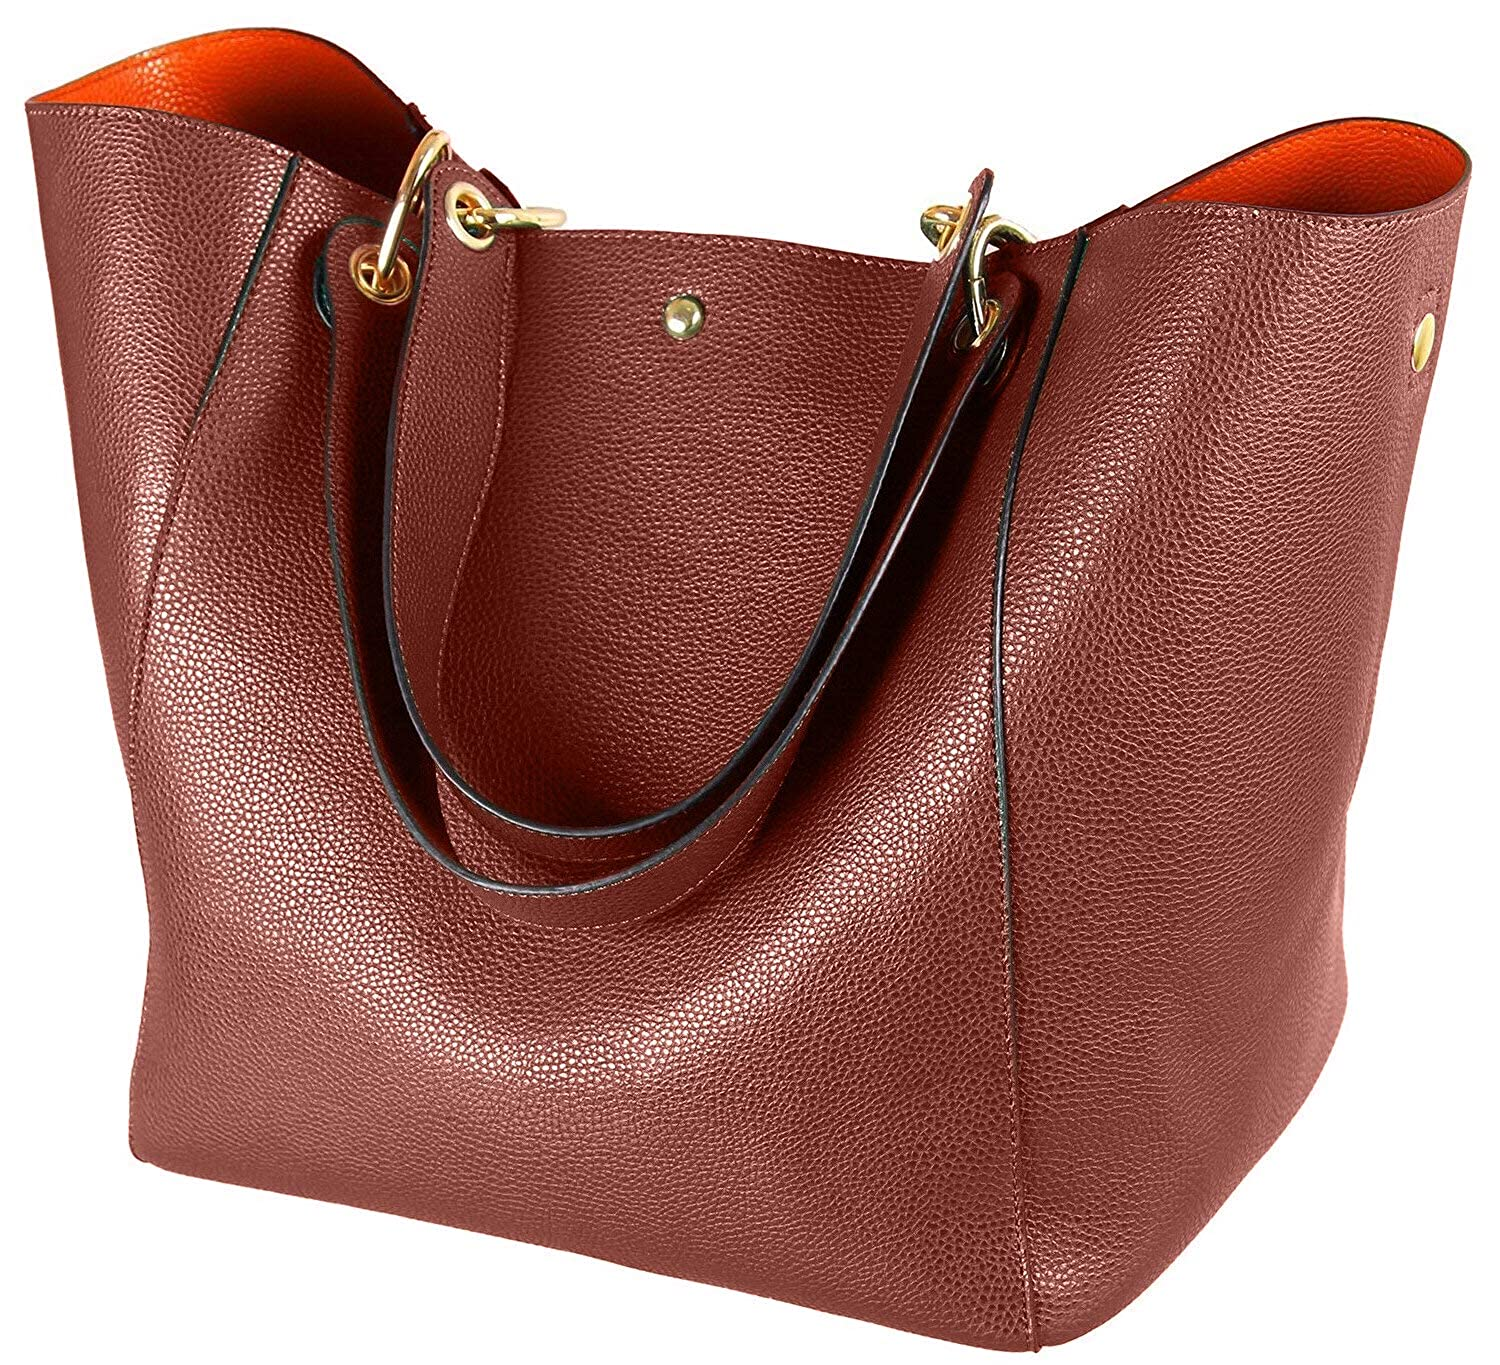 4a0987aa SQLP Fashion Women's Leather Handbags ladies Waterproof Shoulder Bag Tote  Bags